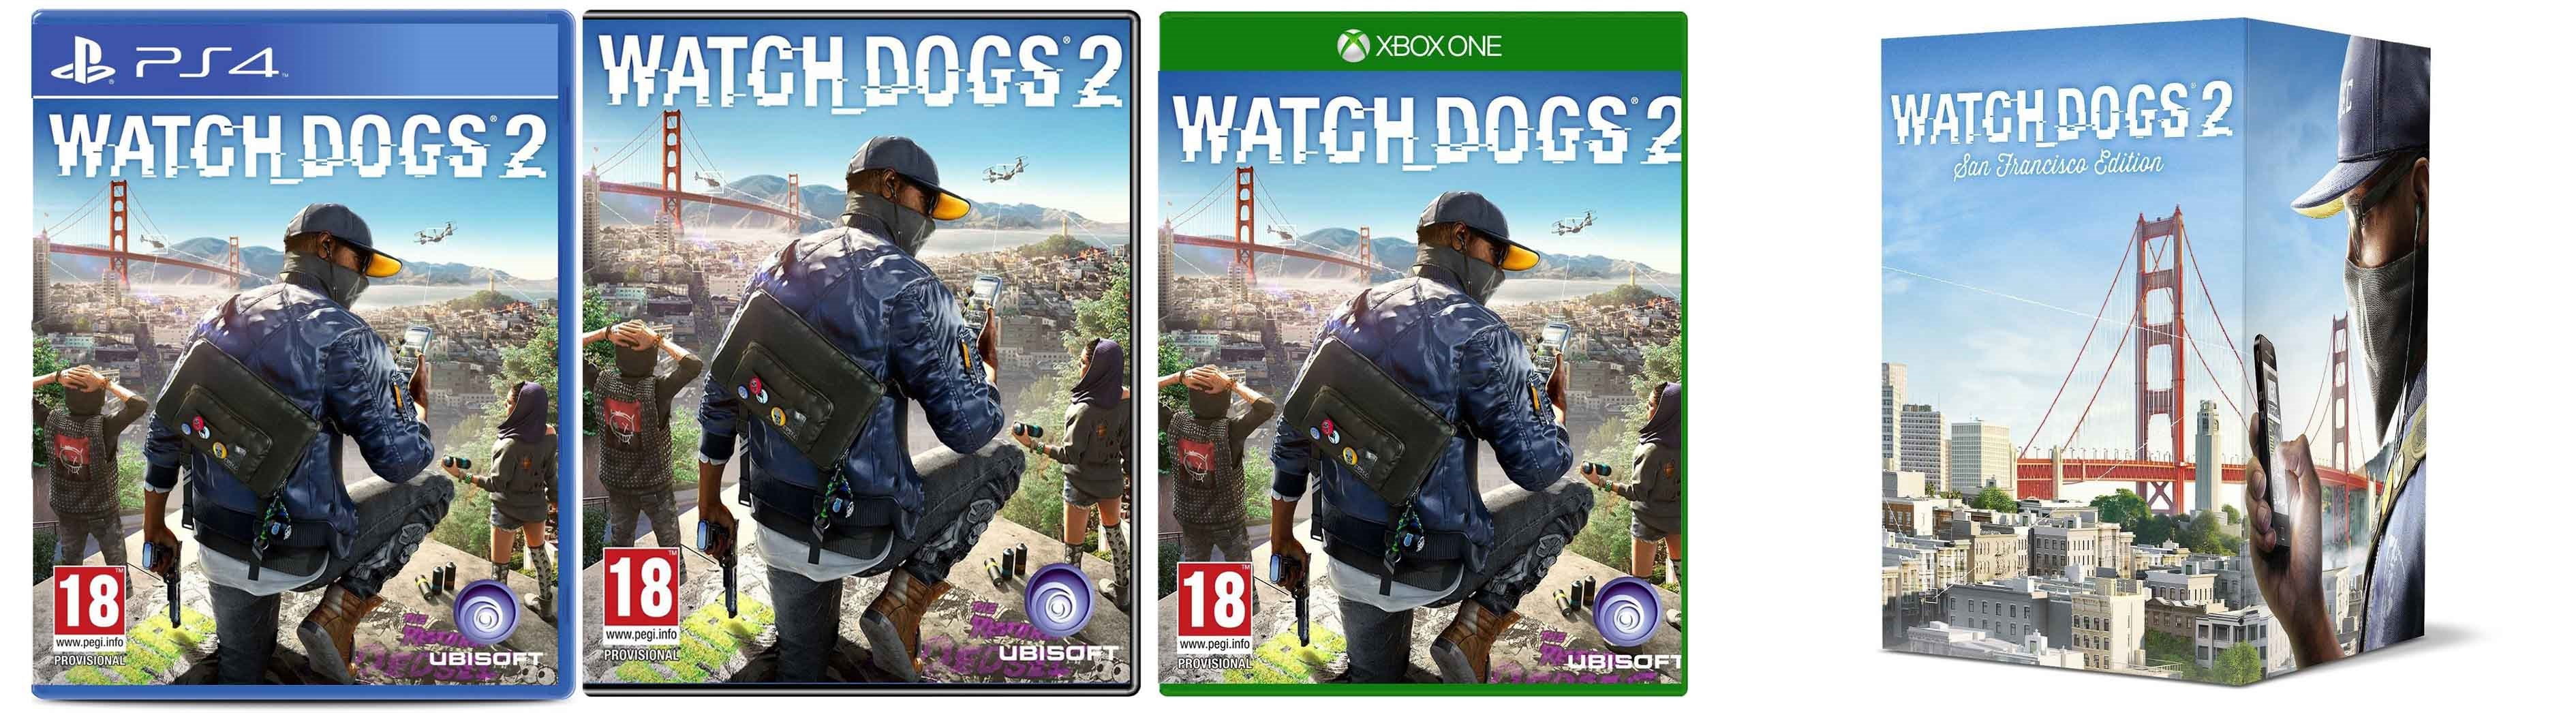 watch dogs 2; Play Station 4; PC; Xbox One; San Francisco Edition